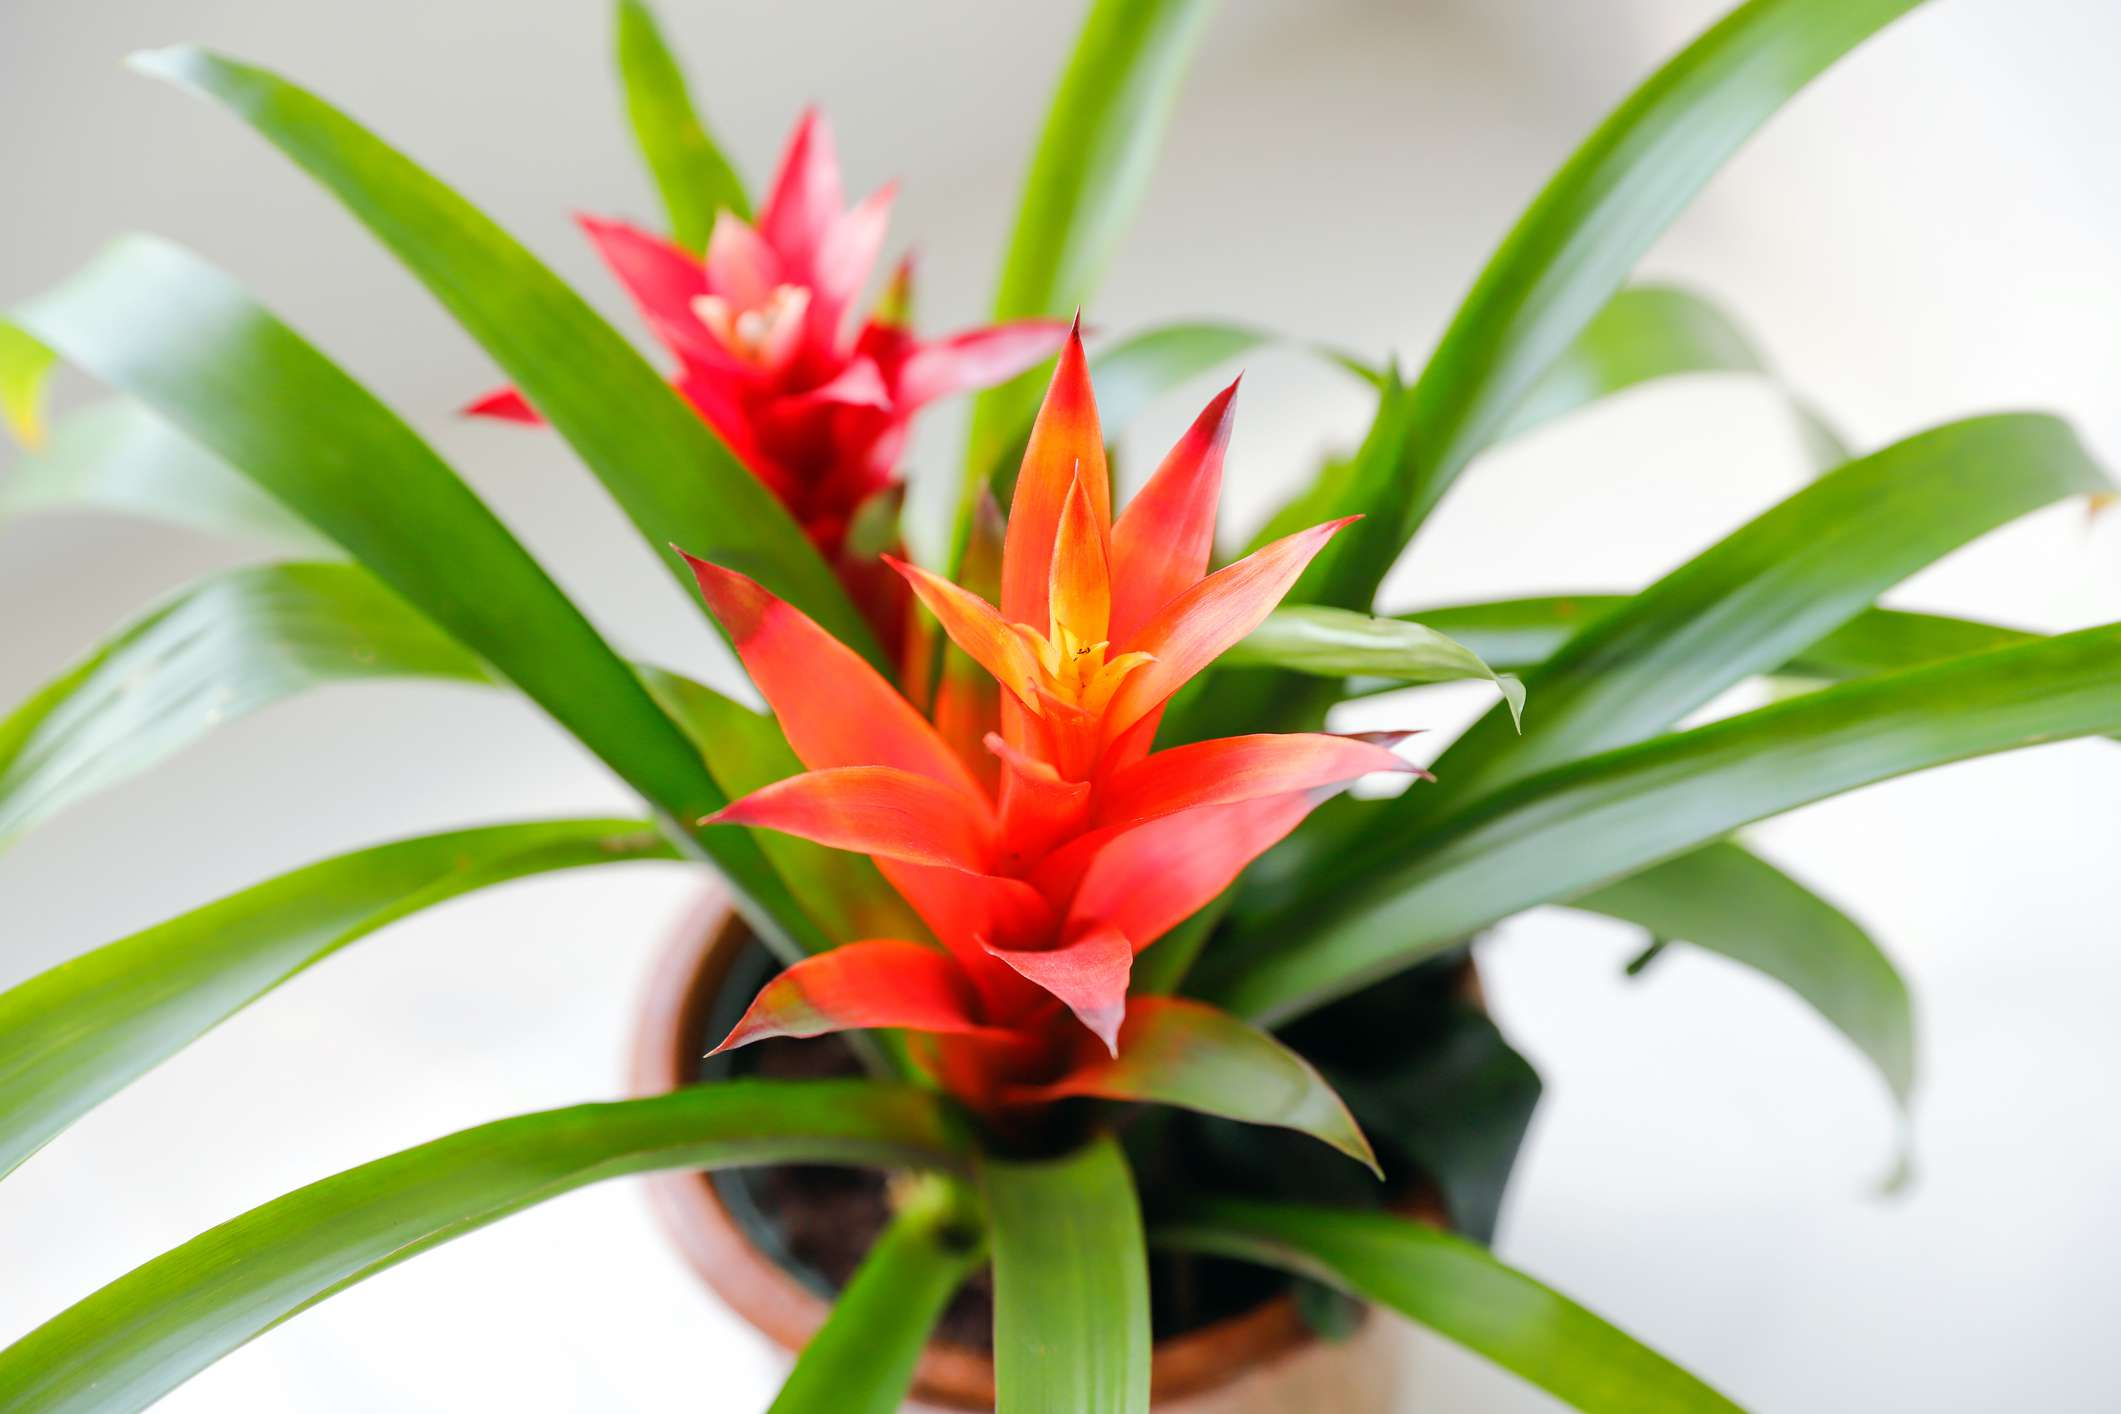 A close up shot of a green and red bright bromeliad.